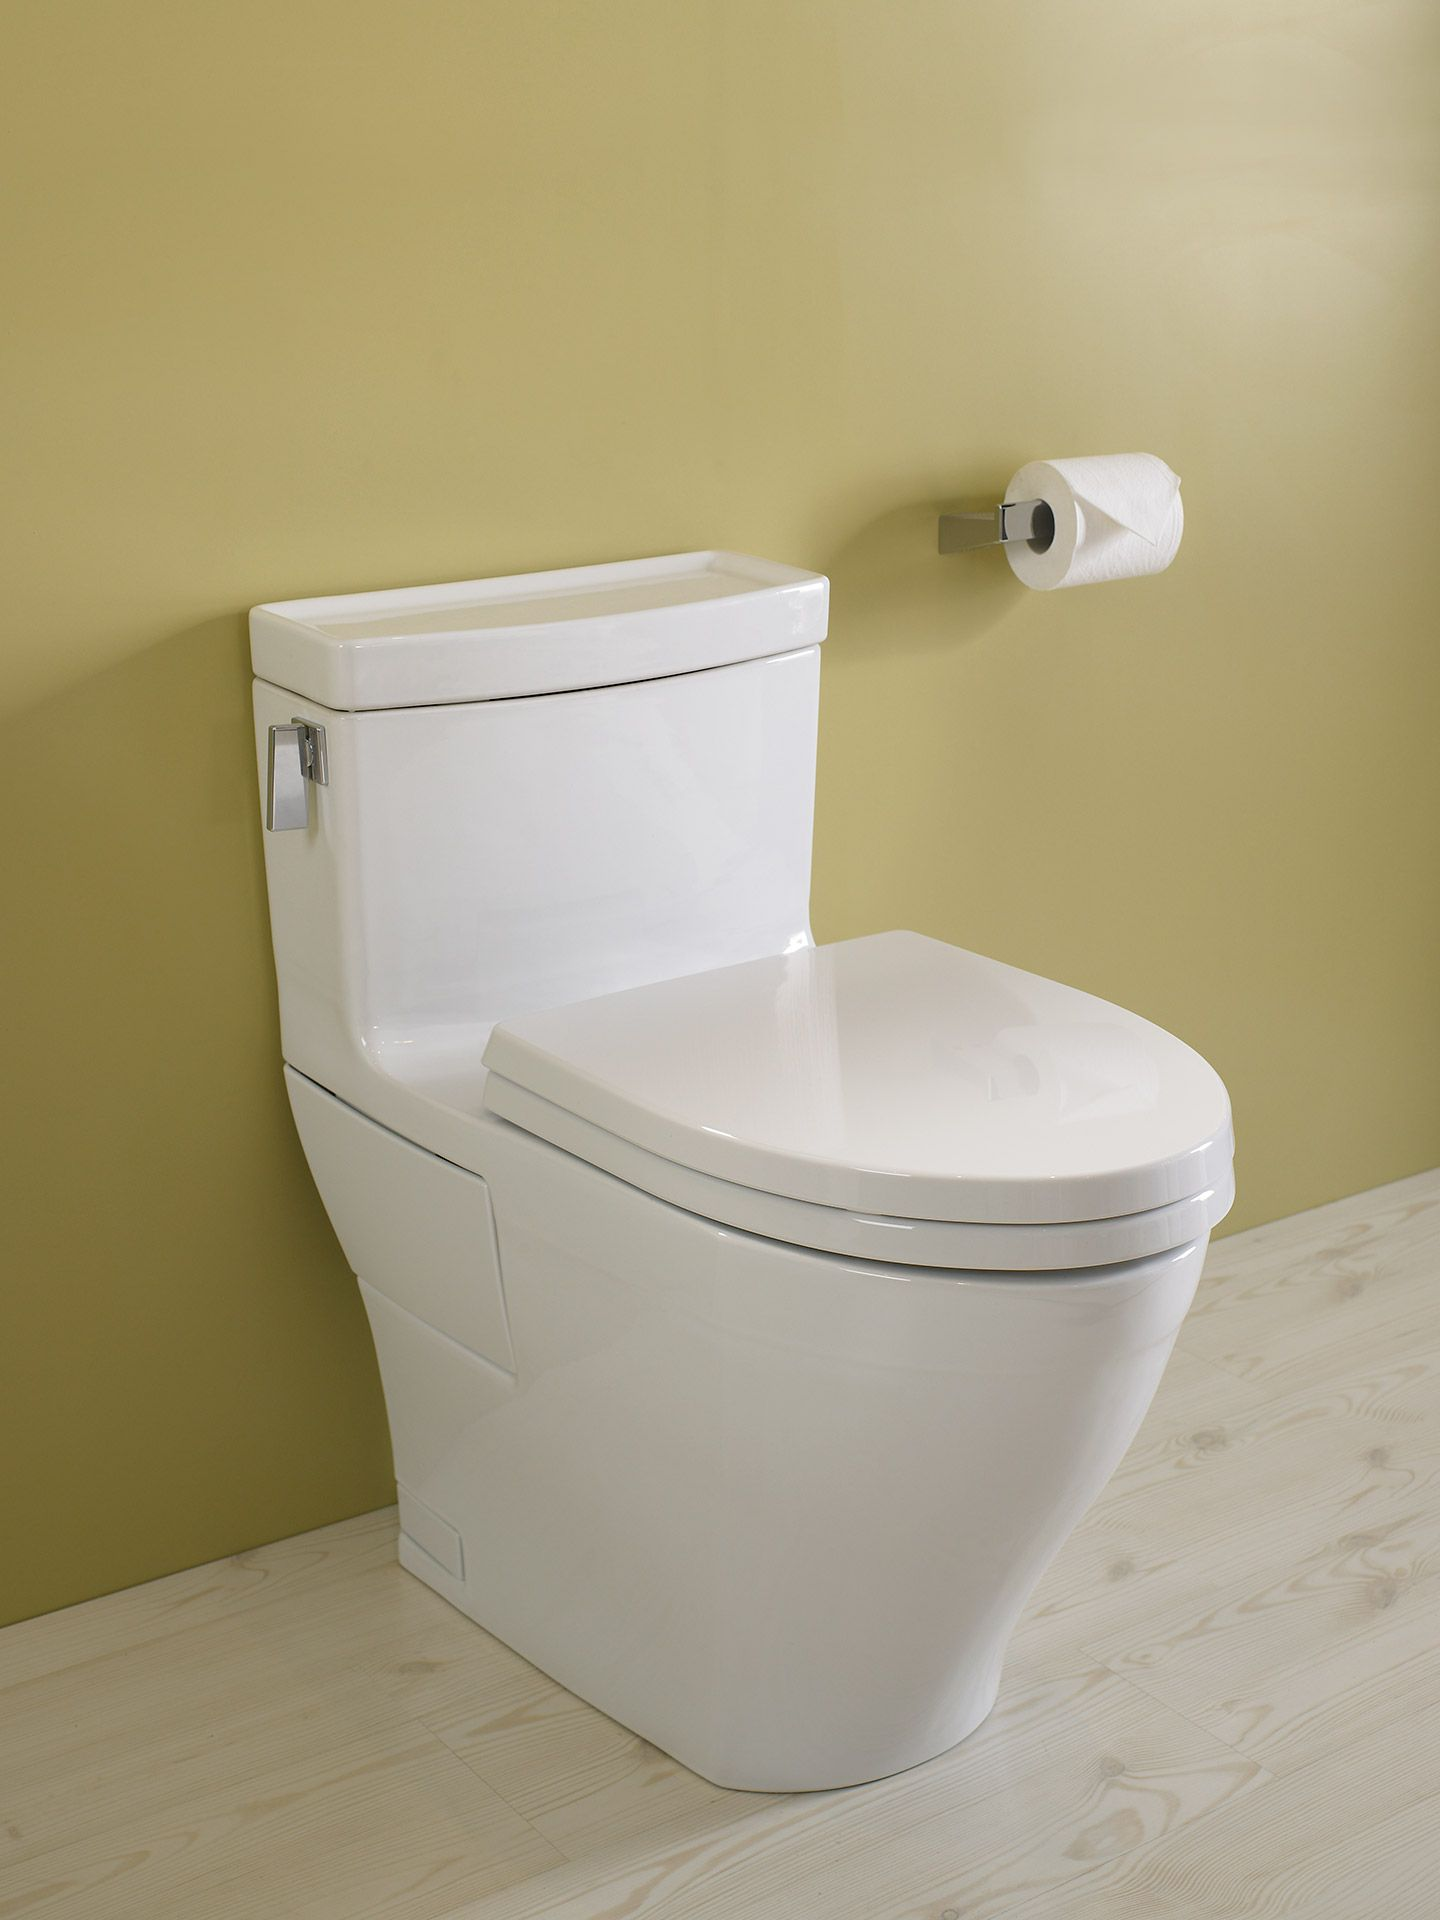 Legato One Piece Toilet 1 28gpf Elongated Bowl